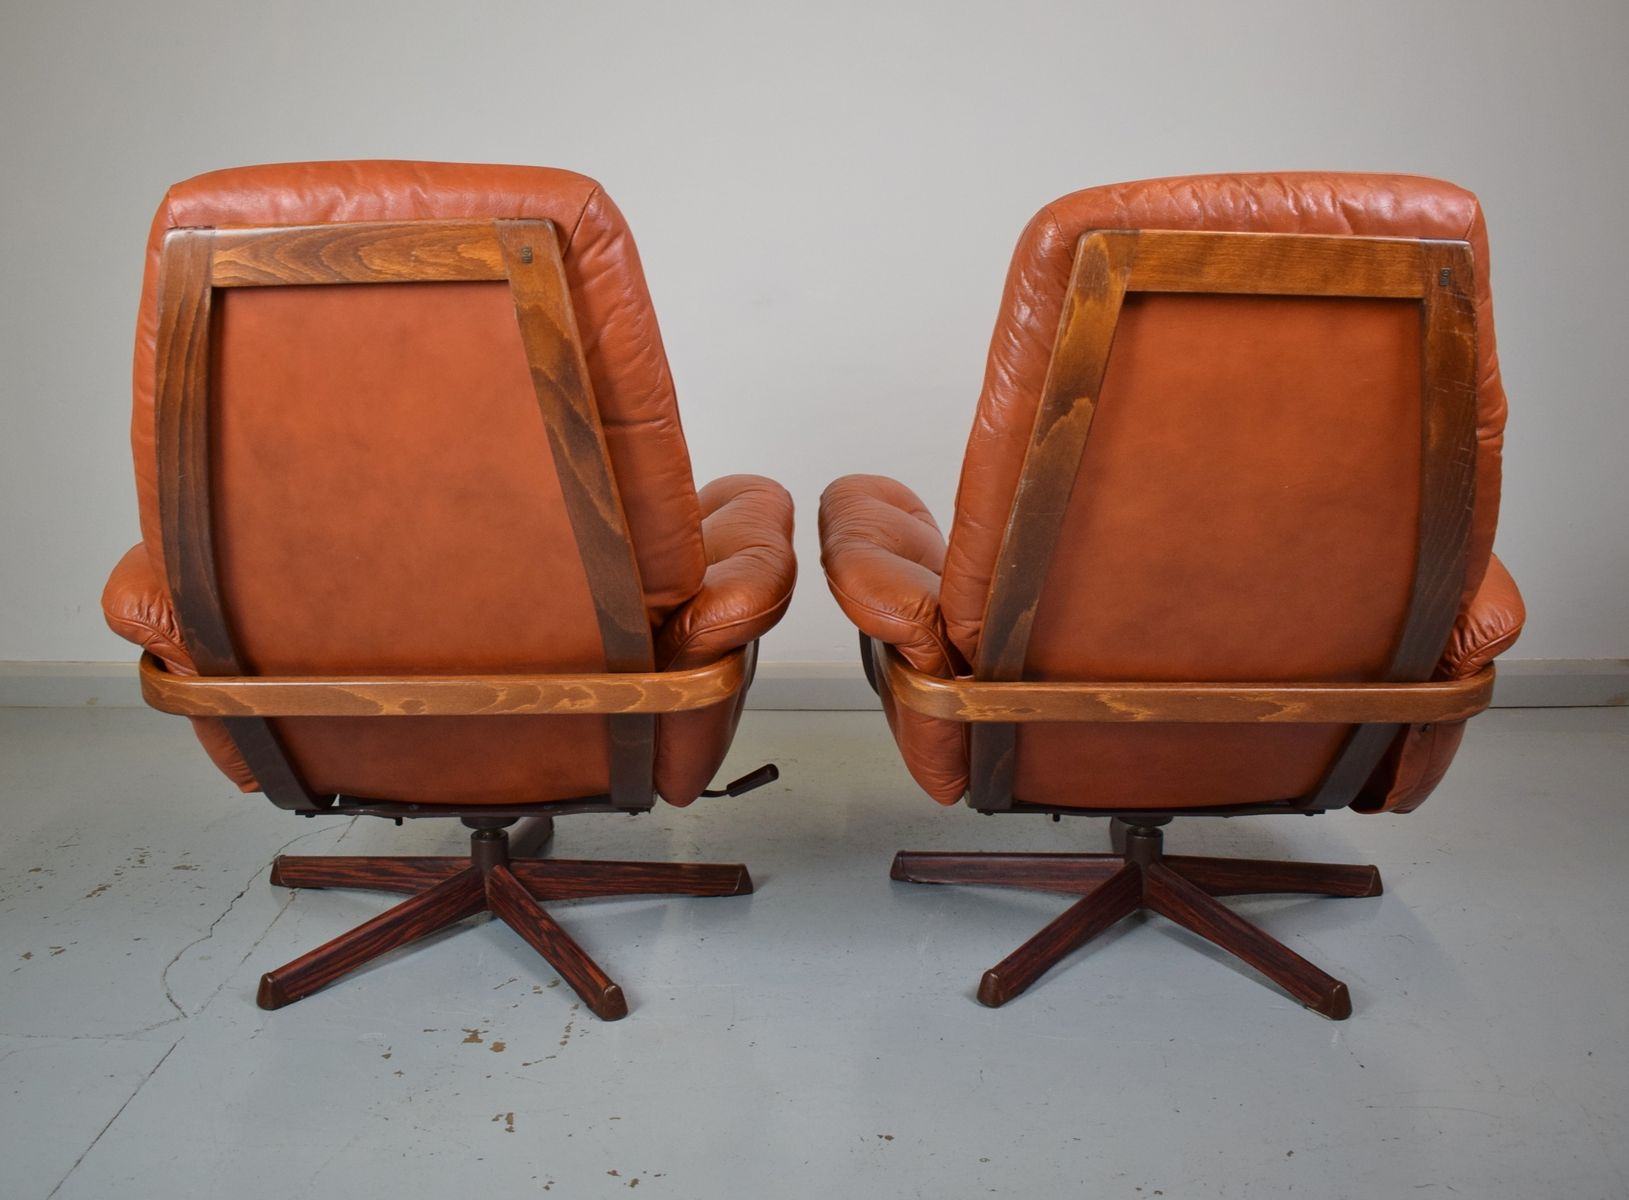 swedish leather recliner chairs west elm saddle office chair tan red reclining swivel from göte